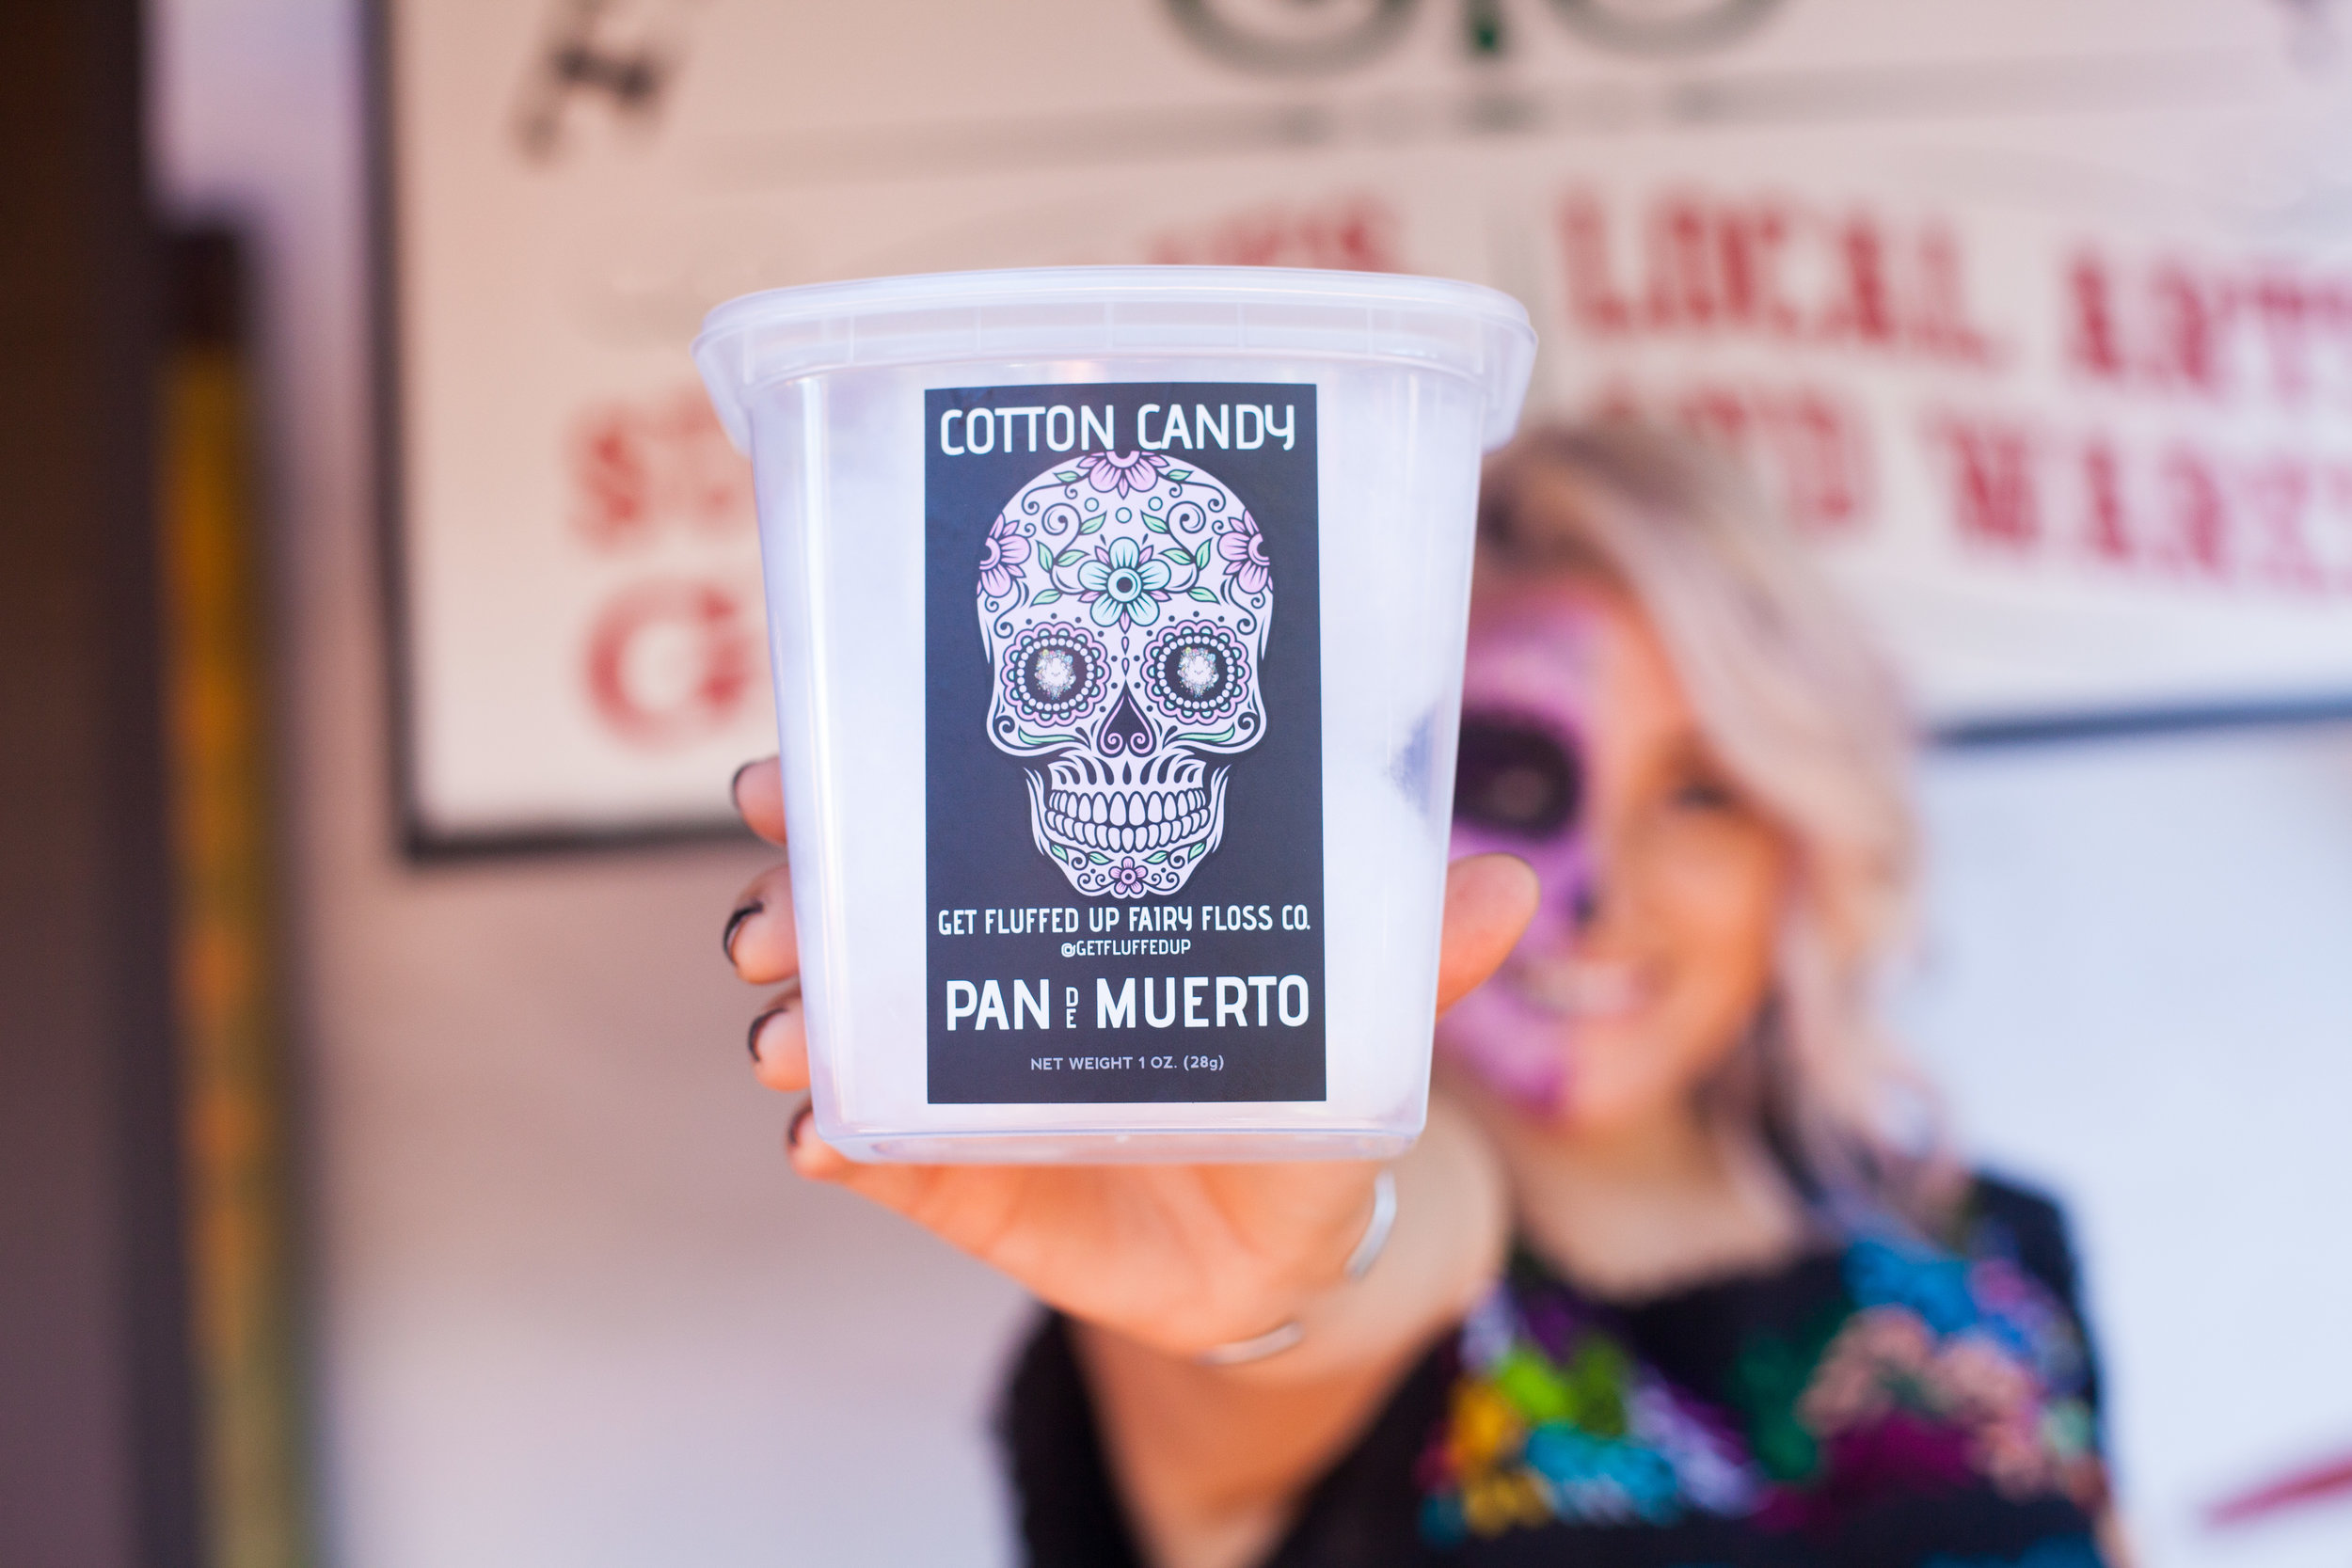 vegan-cotton-candypan-de-muertos-fairy-floss-get-fluffed-14